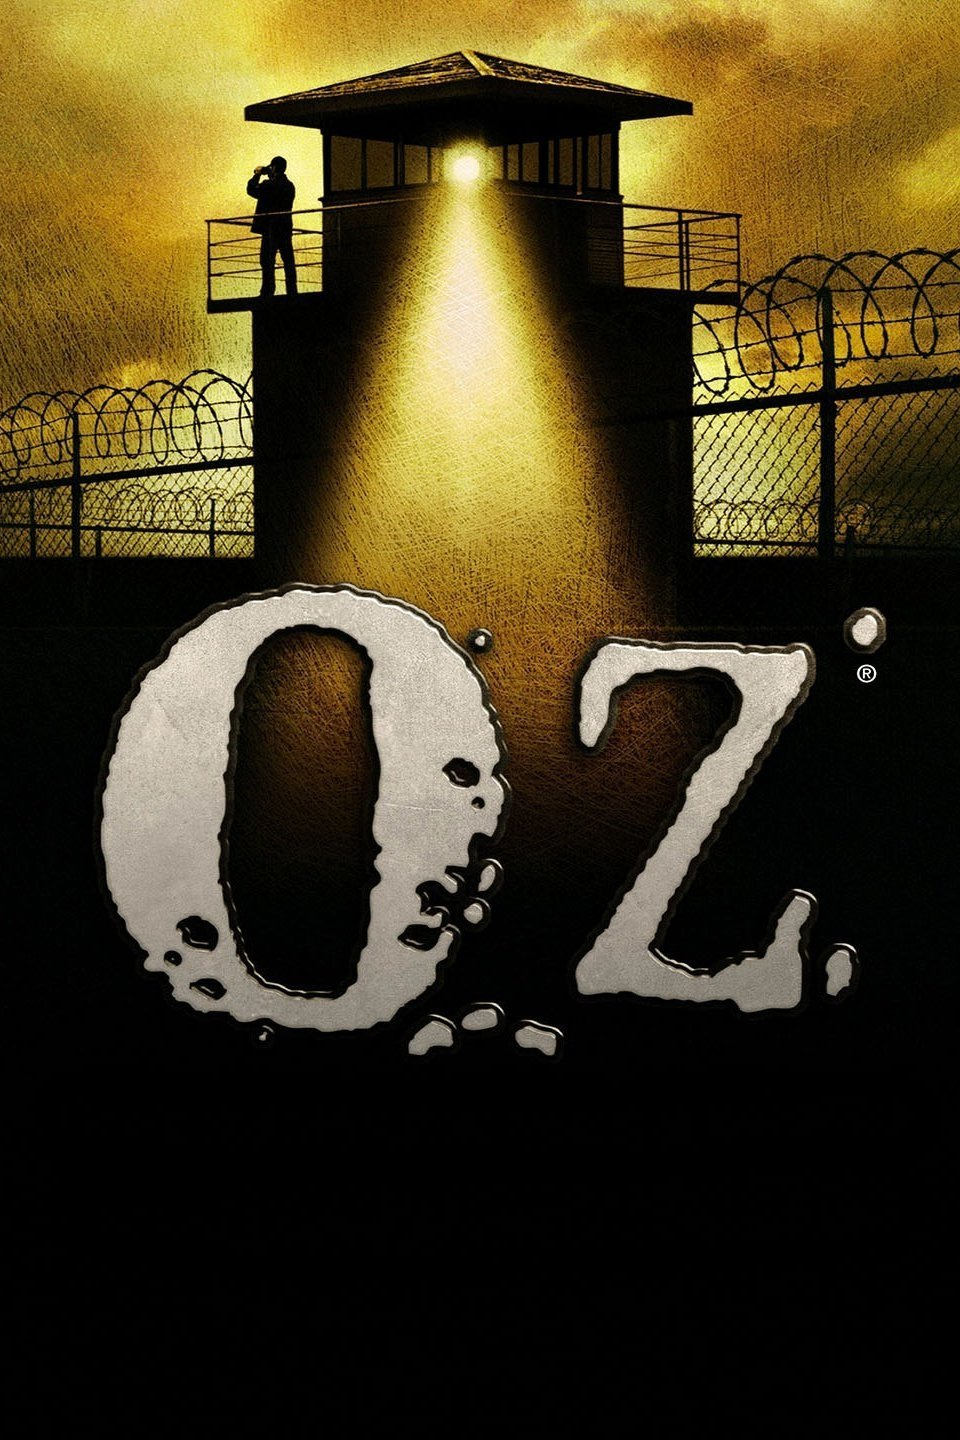 Oz - A lot of people give credit to The Sopranos as the start of HBO taking over television. That credit is well deserved but let's not forget about the show that paved the way for Tony Soprano. Oz started in 1997 and ran for 6 seasons. The show served as a playground for seemingly every talented character actor and a launch point for some pretty great actors. Names like J.K. Simmons, Dean Winters, and Kirk Acevedo all did time in prison. The reboot show could check back in with the lifers and be the catalyst to help some young actors show their chops. Think Orange is the New Black on steroids.